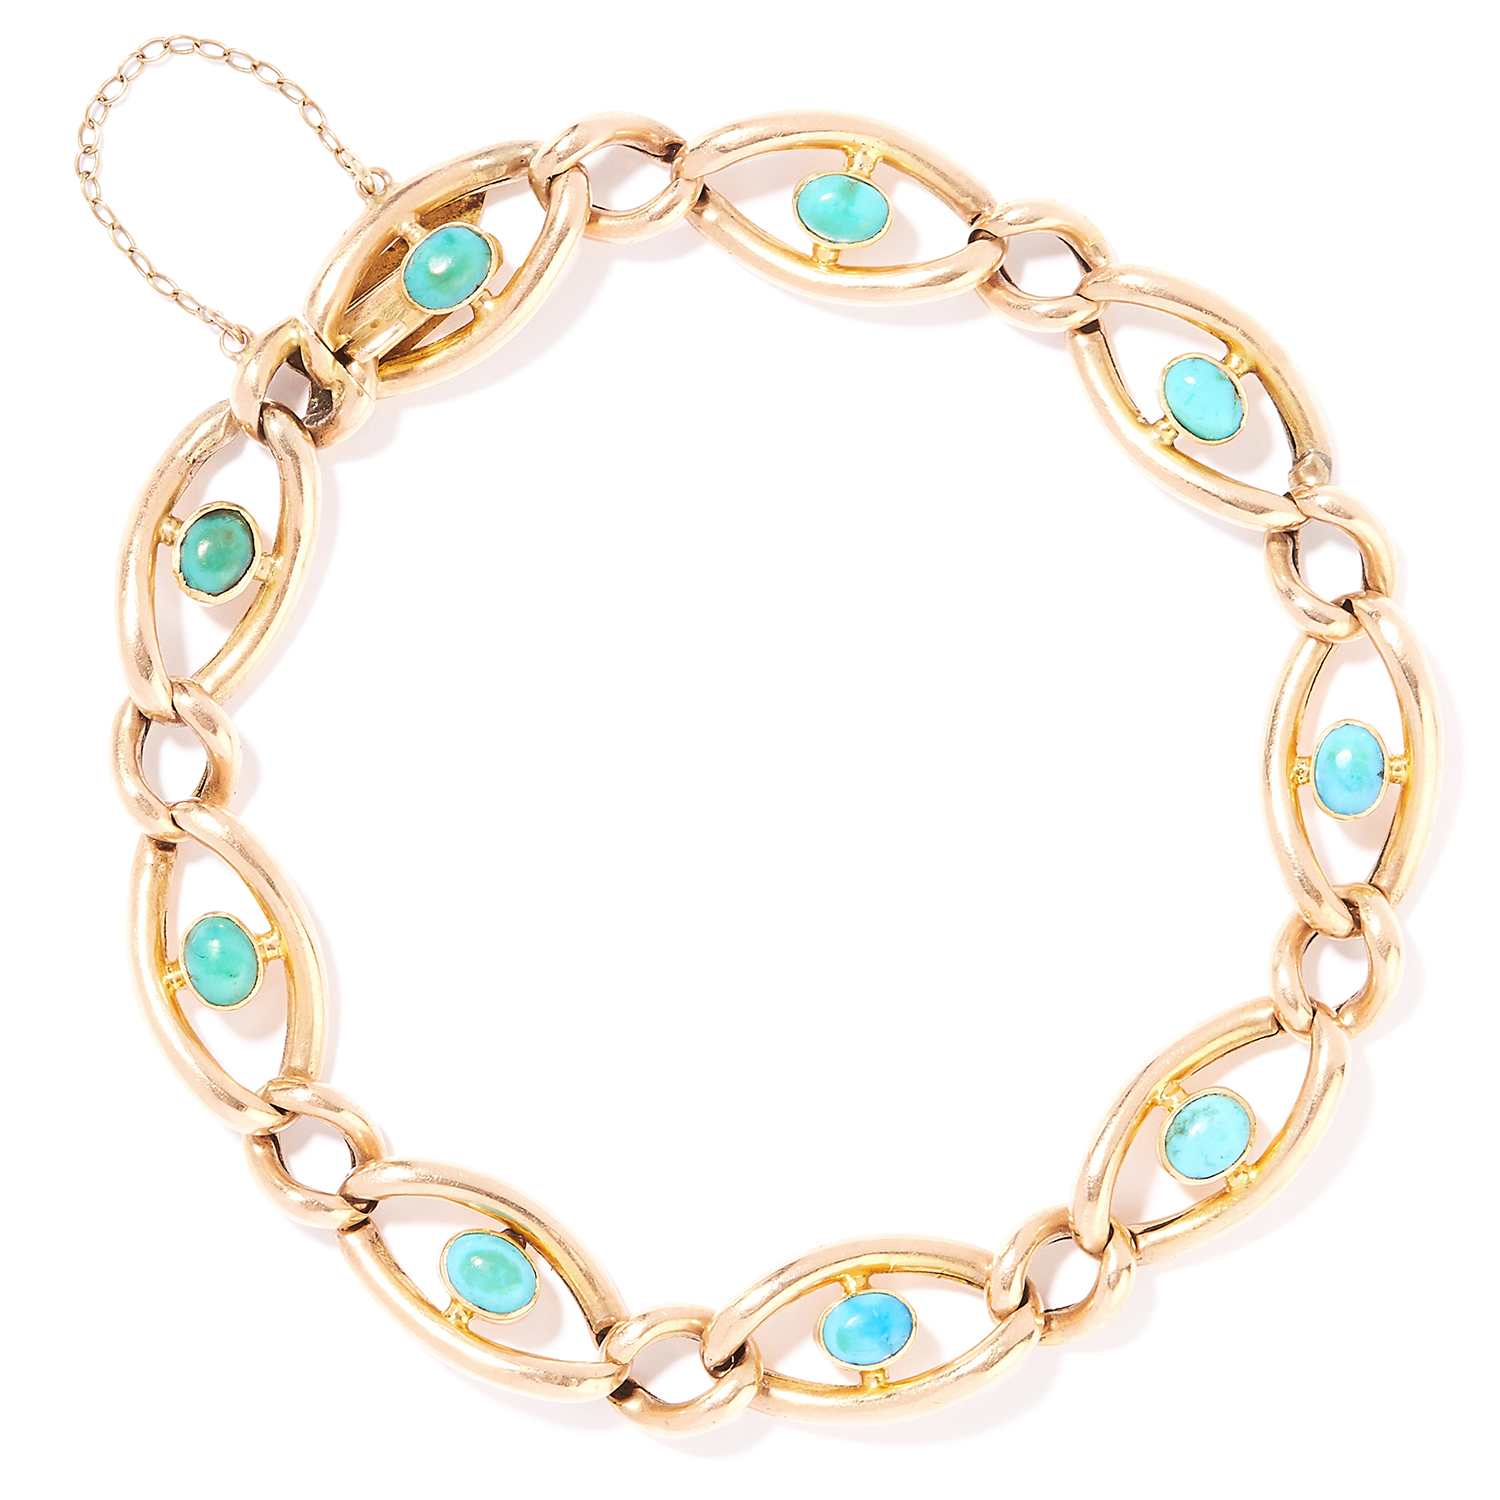 Los 6 - ANTIQUE TURQUOISE BRACELET in 15ct yellow gold, each link is set with a cabochon turquoise,